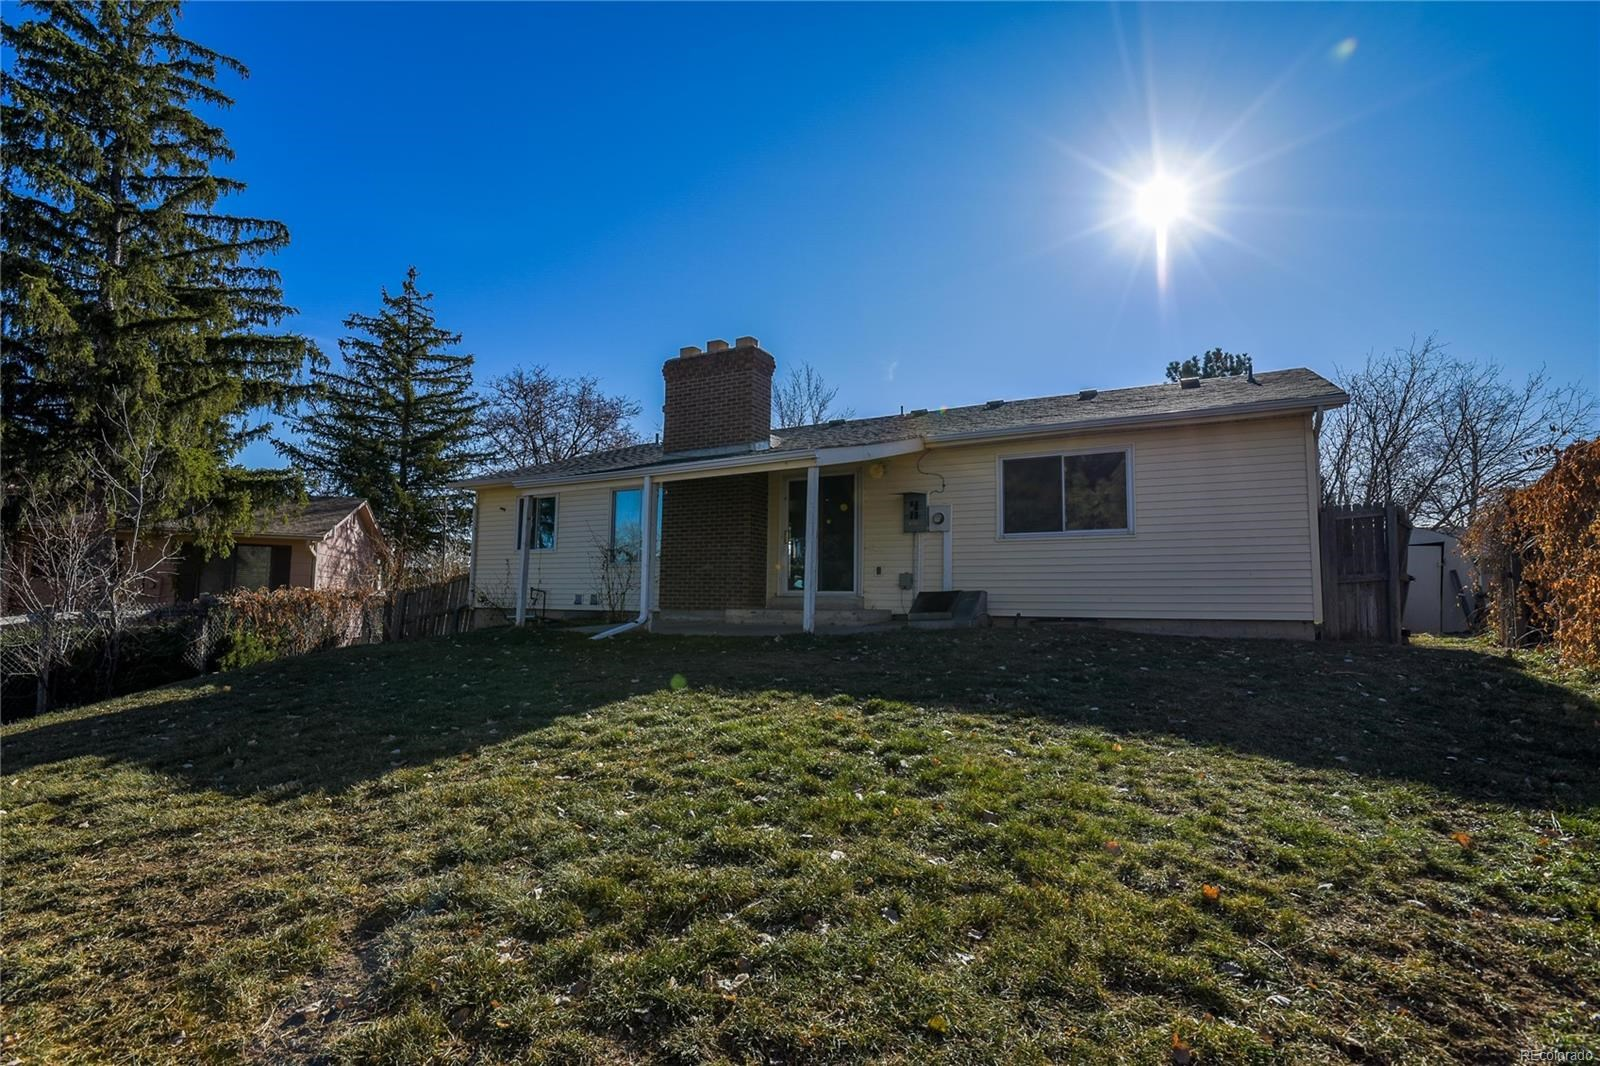 MLS# 8183776 - 10 - 2547 W 104th Circle, Westminster, CO 80234